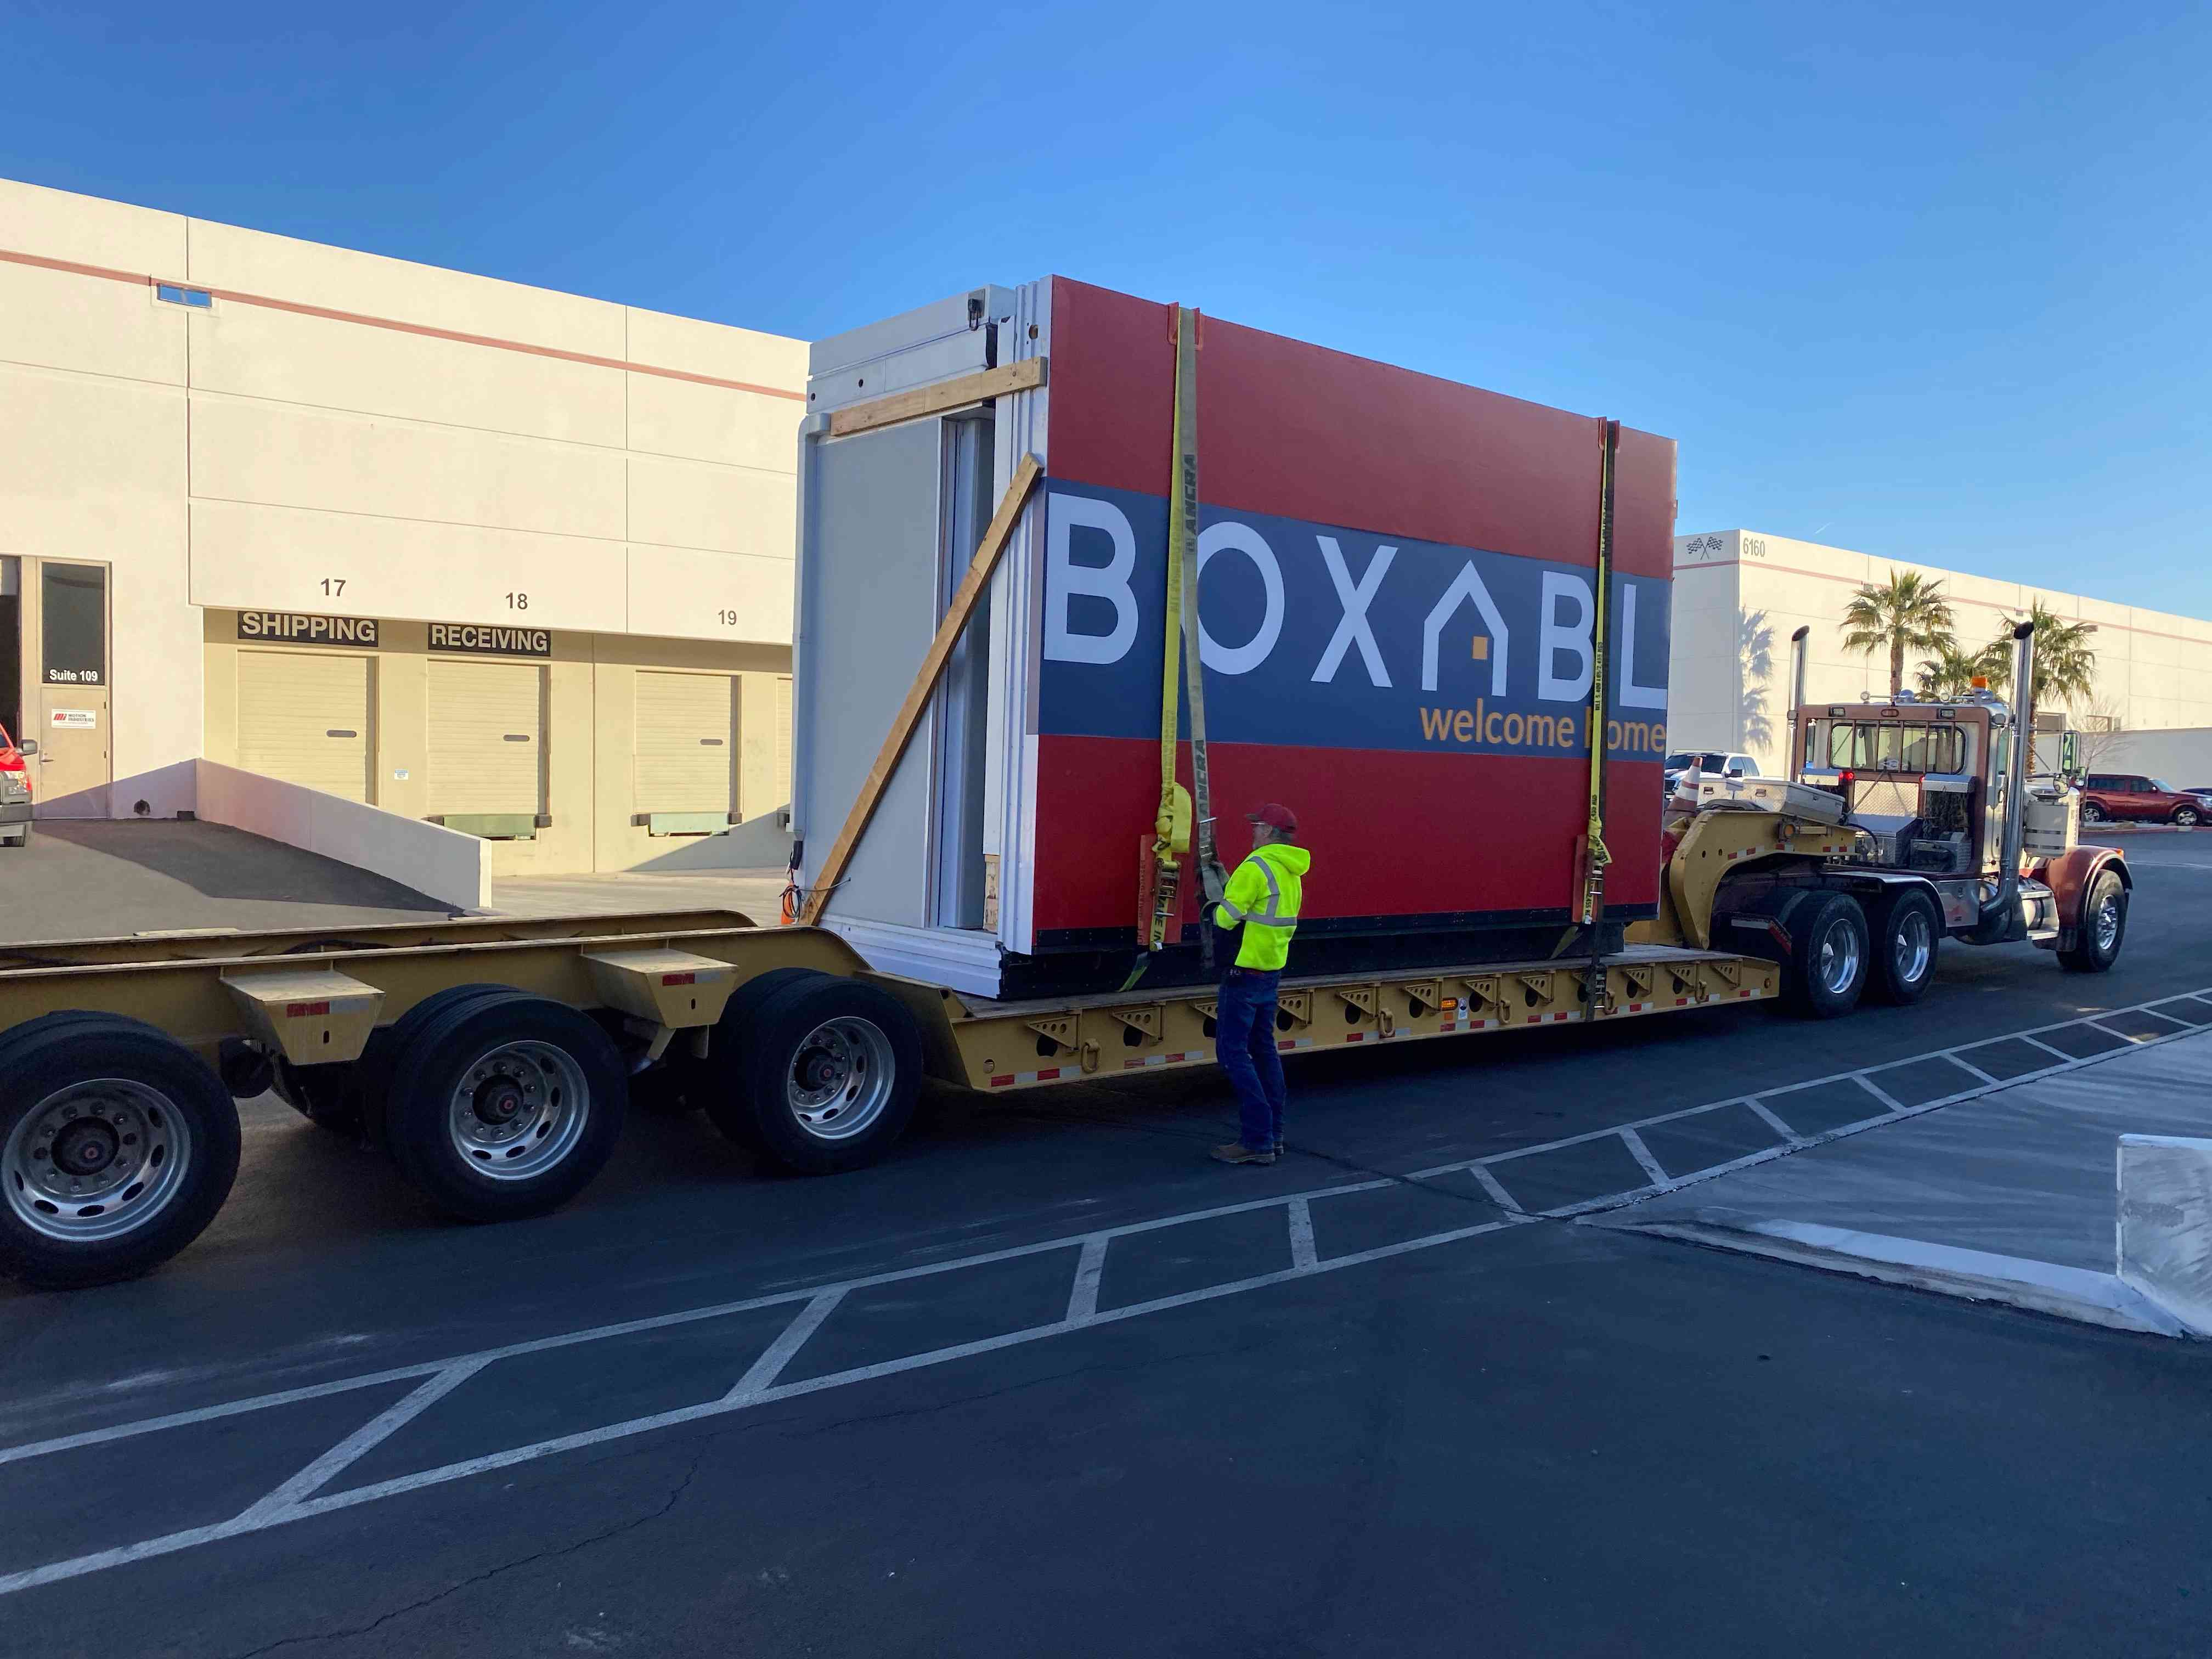 Boxable on a truck